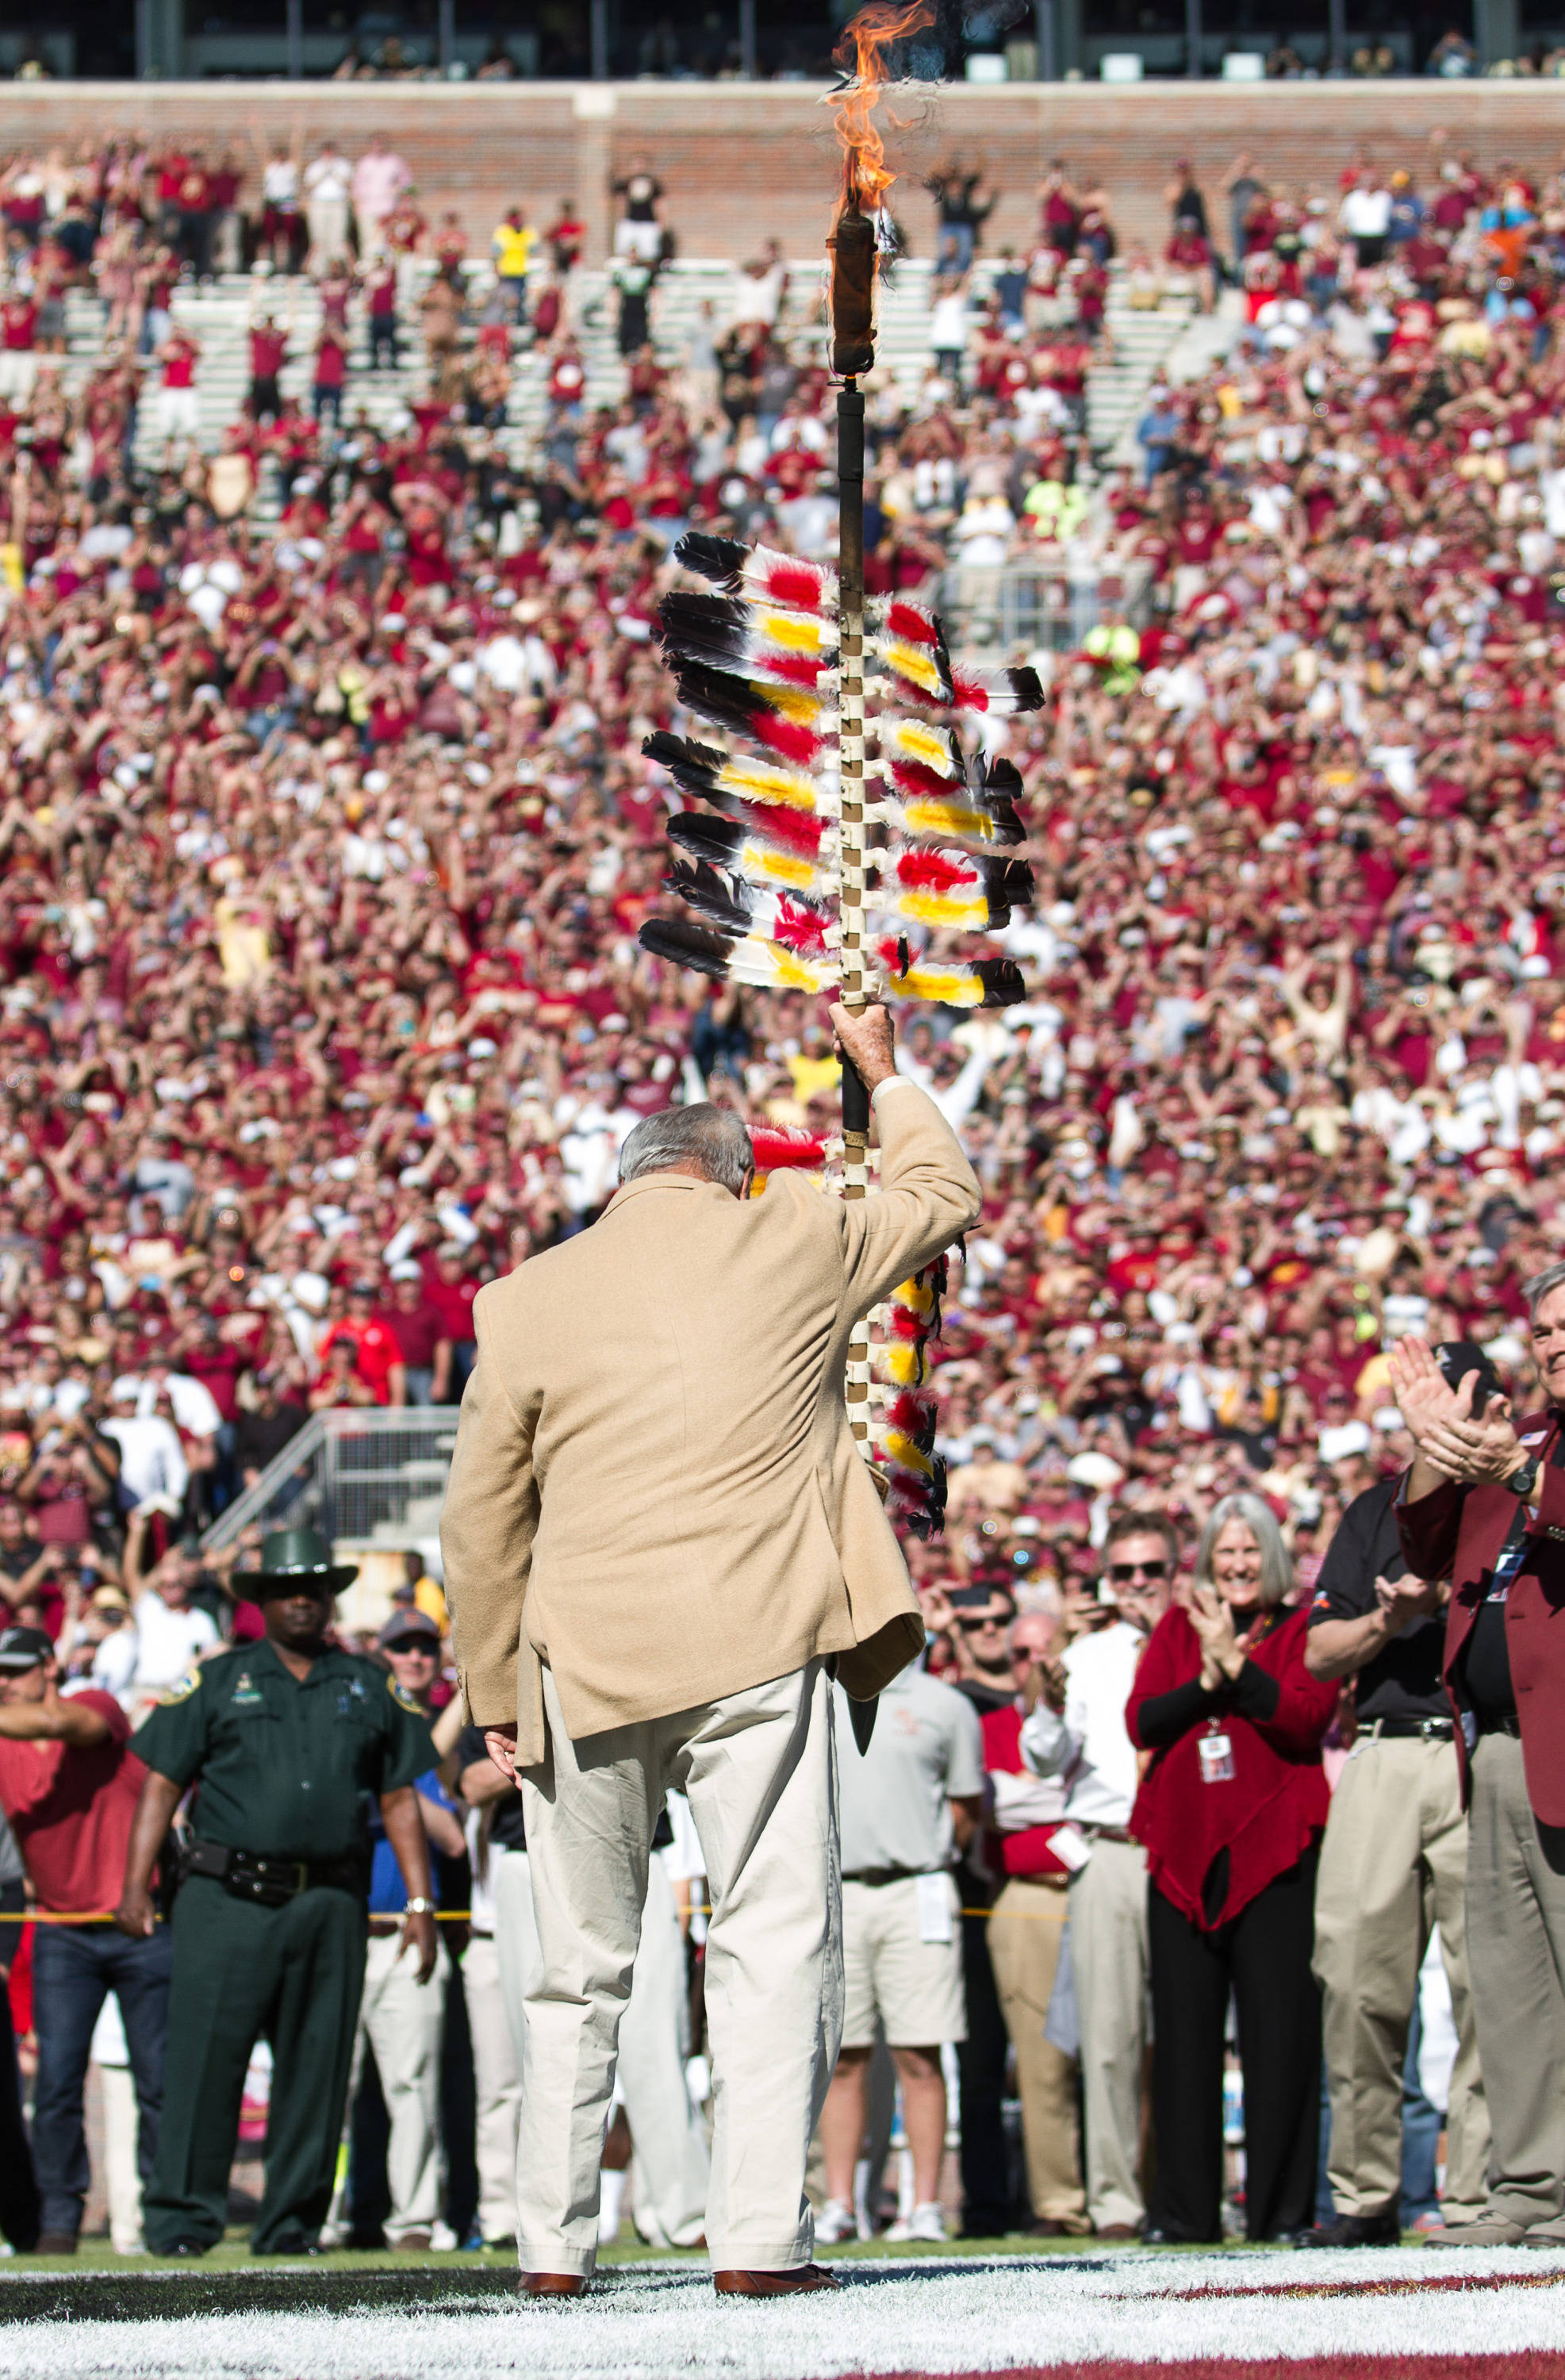 Bobby Bowden plants the spear before FSU Football's 49-17 win over NC State on Saturday, October 26, 2013 in Tallahassee, Fla. Photo by Michael Schwarz.